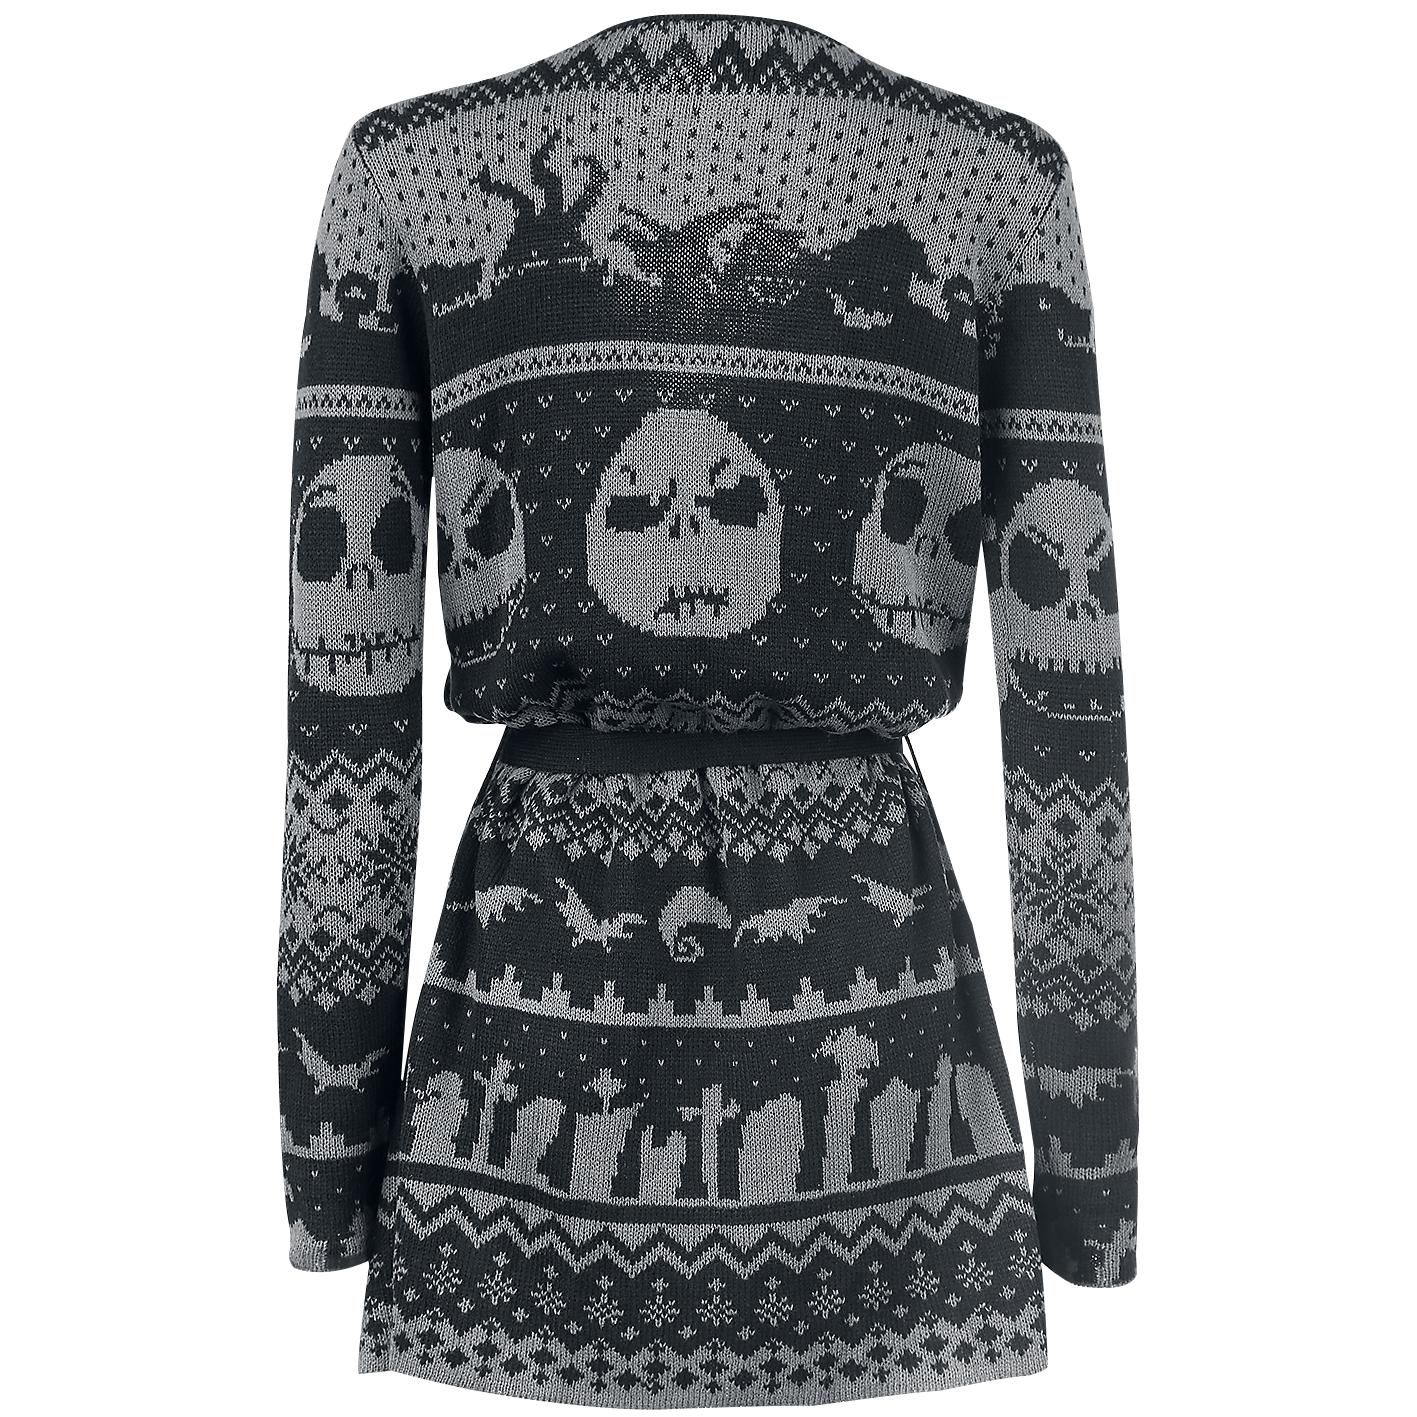 The Nightmare Before Christmas Cardigan »Norwegian Cardigan« | Buy ...